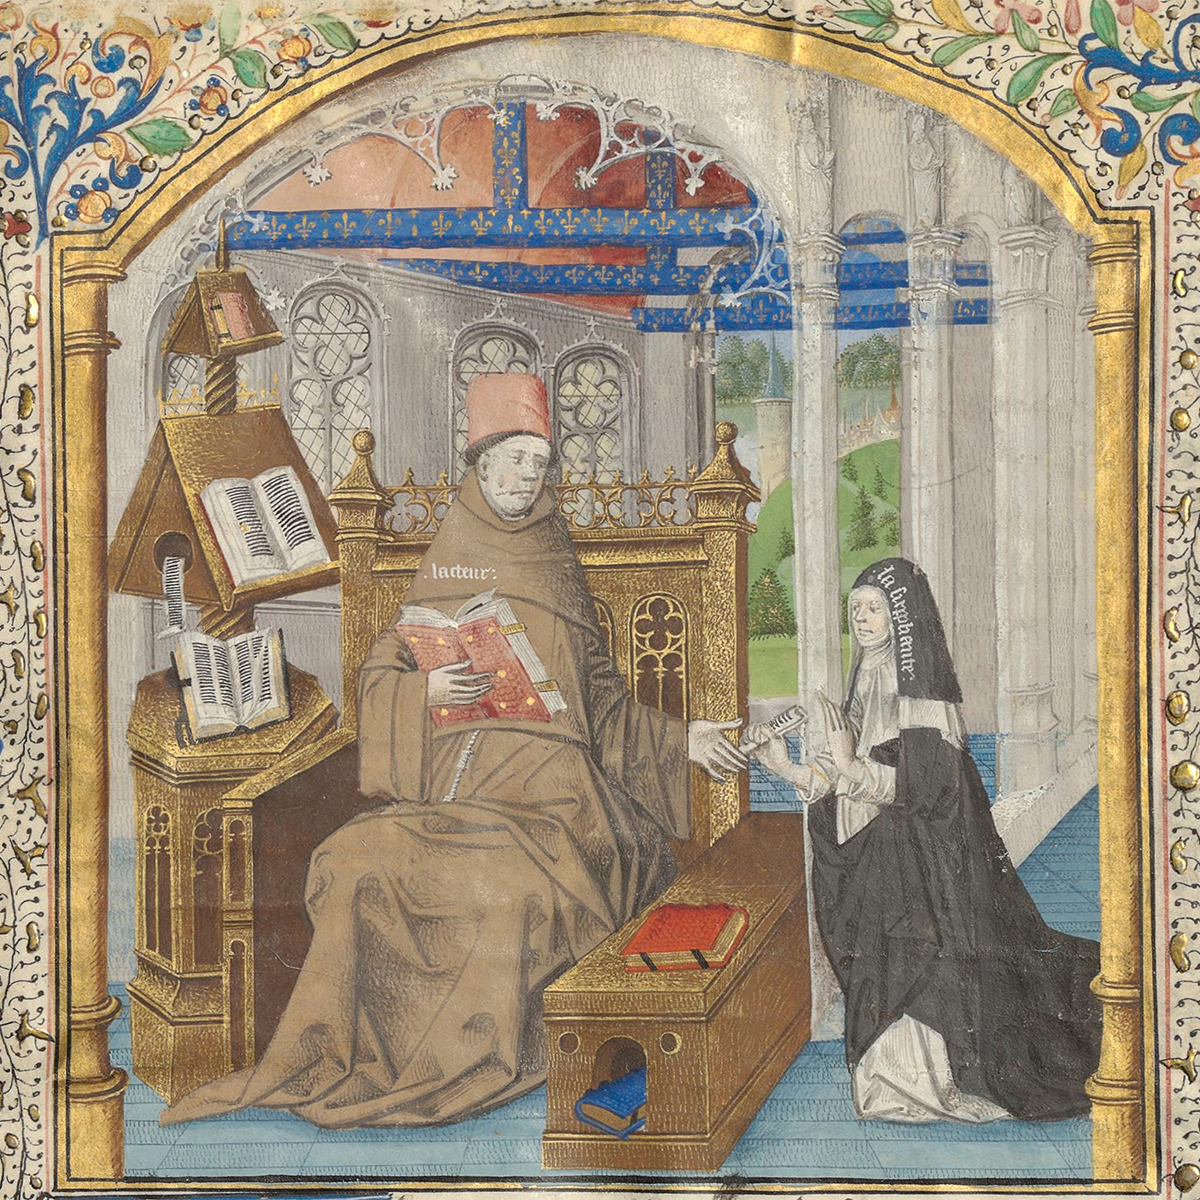 A gold-trimmed manuscript illustration depicting a monk in robes at a reading desk in a medieval cloister receiving a roll of papers from a kneeling nun.